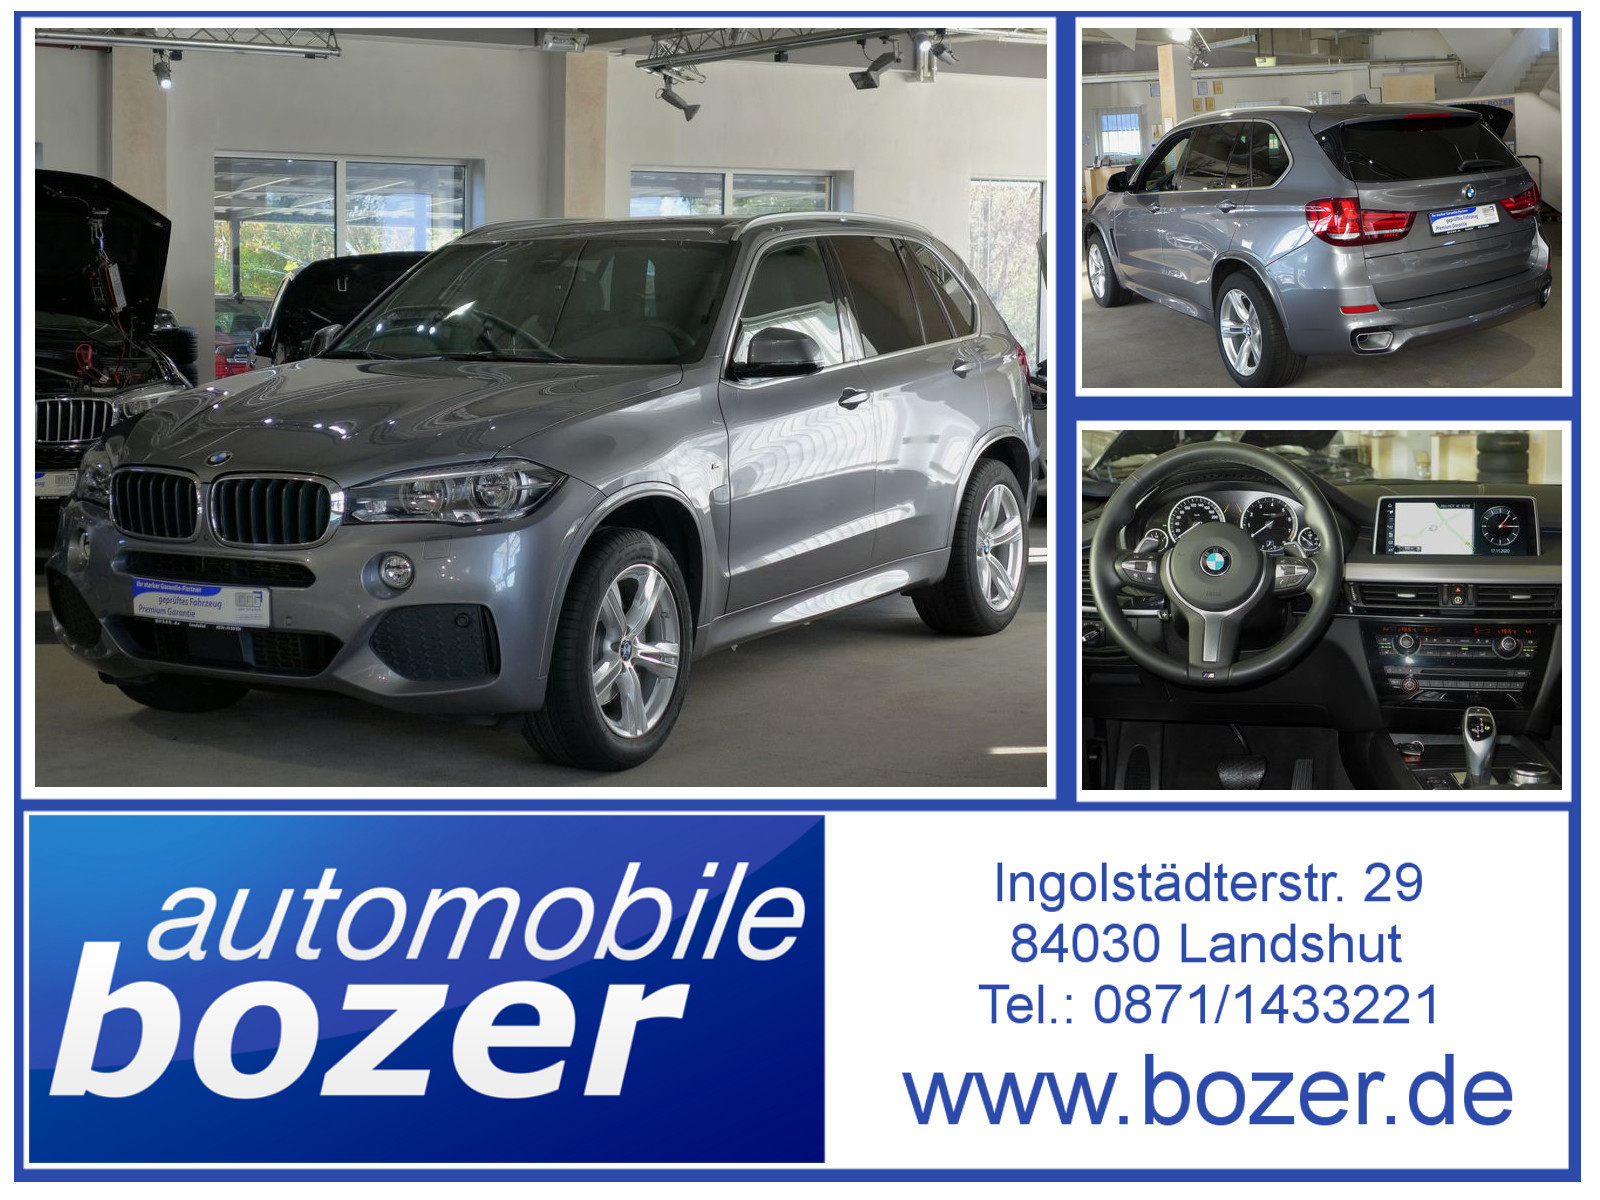 BMW_X5_picture_1_01.jpg